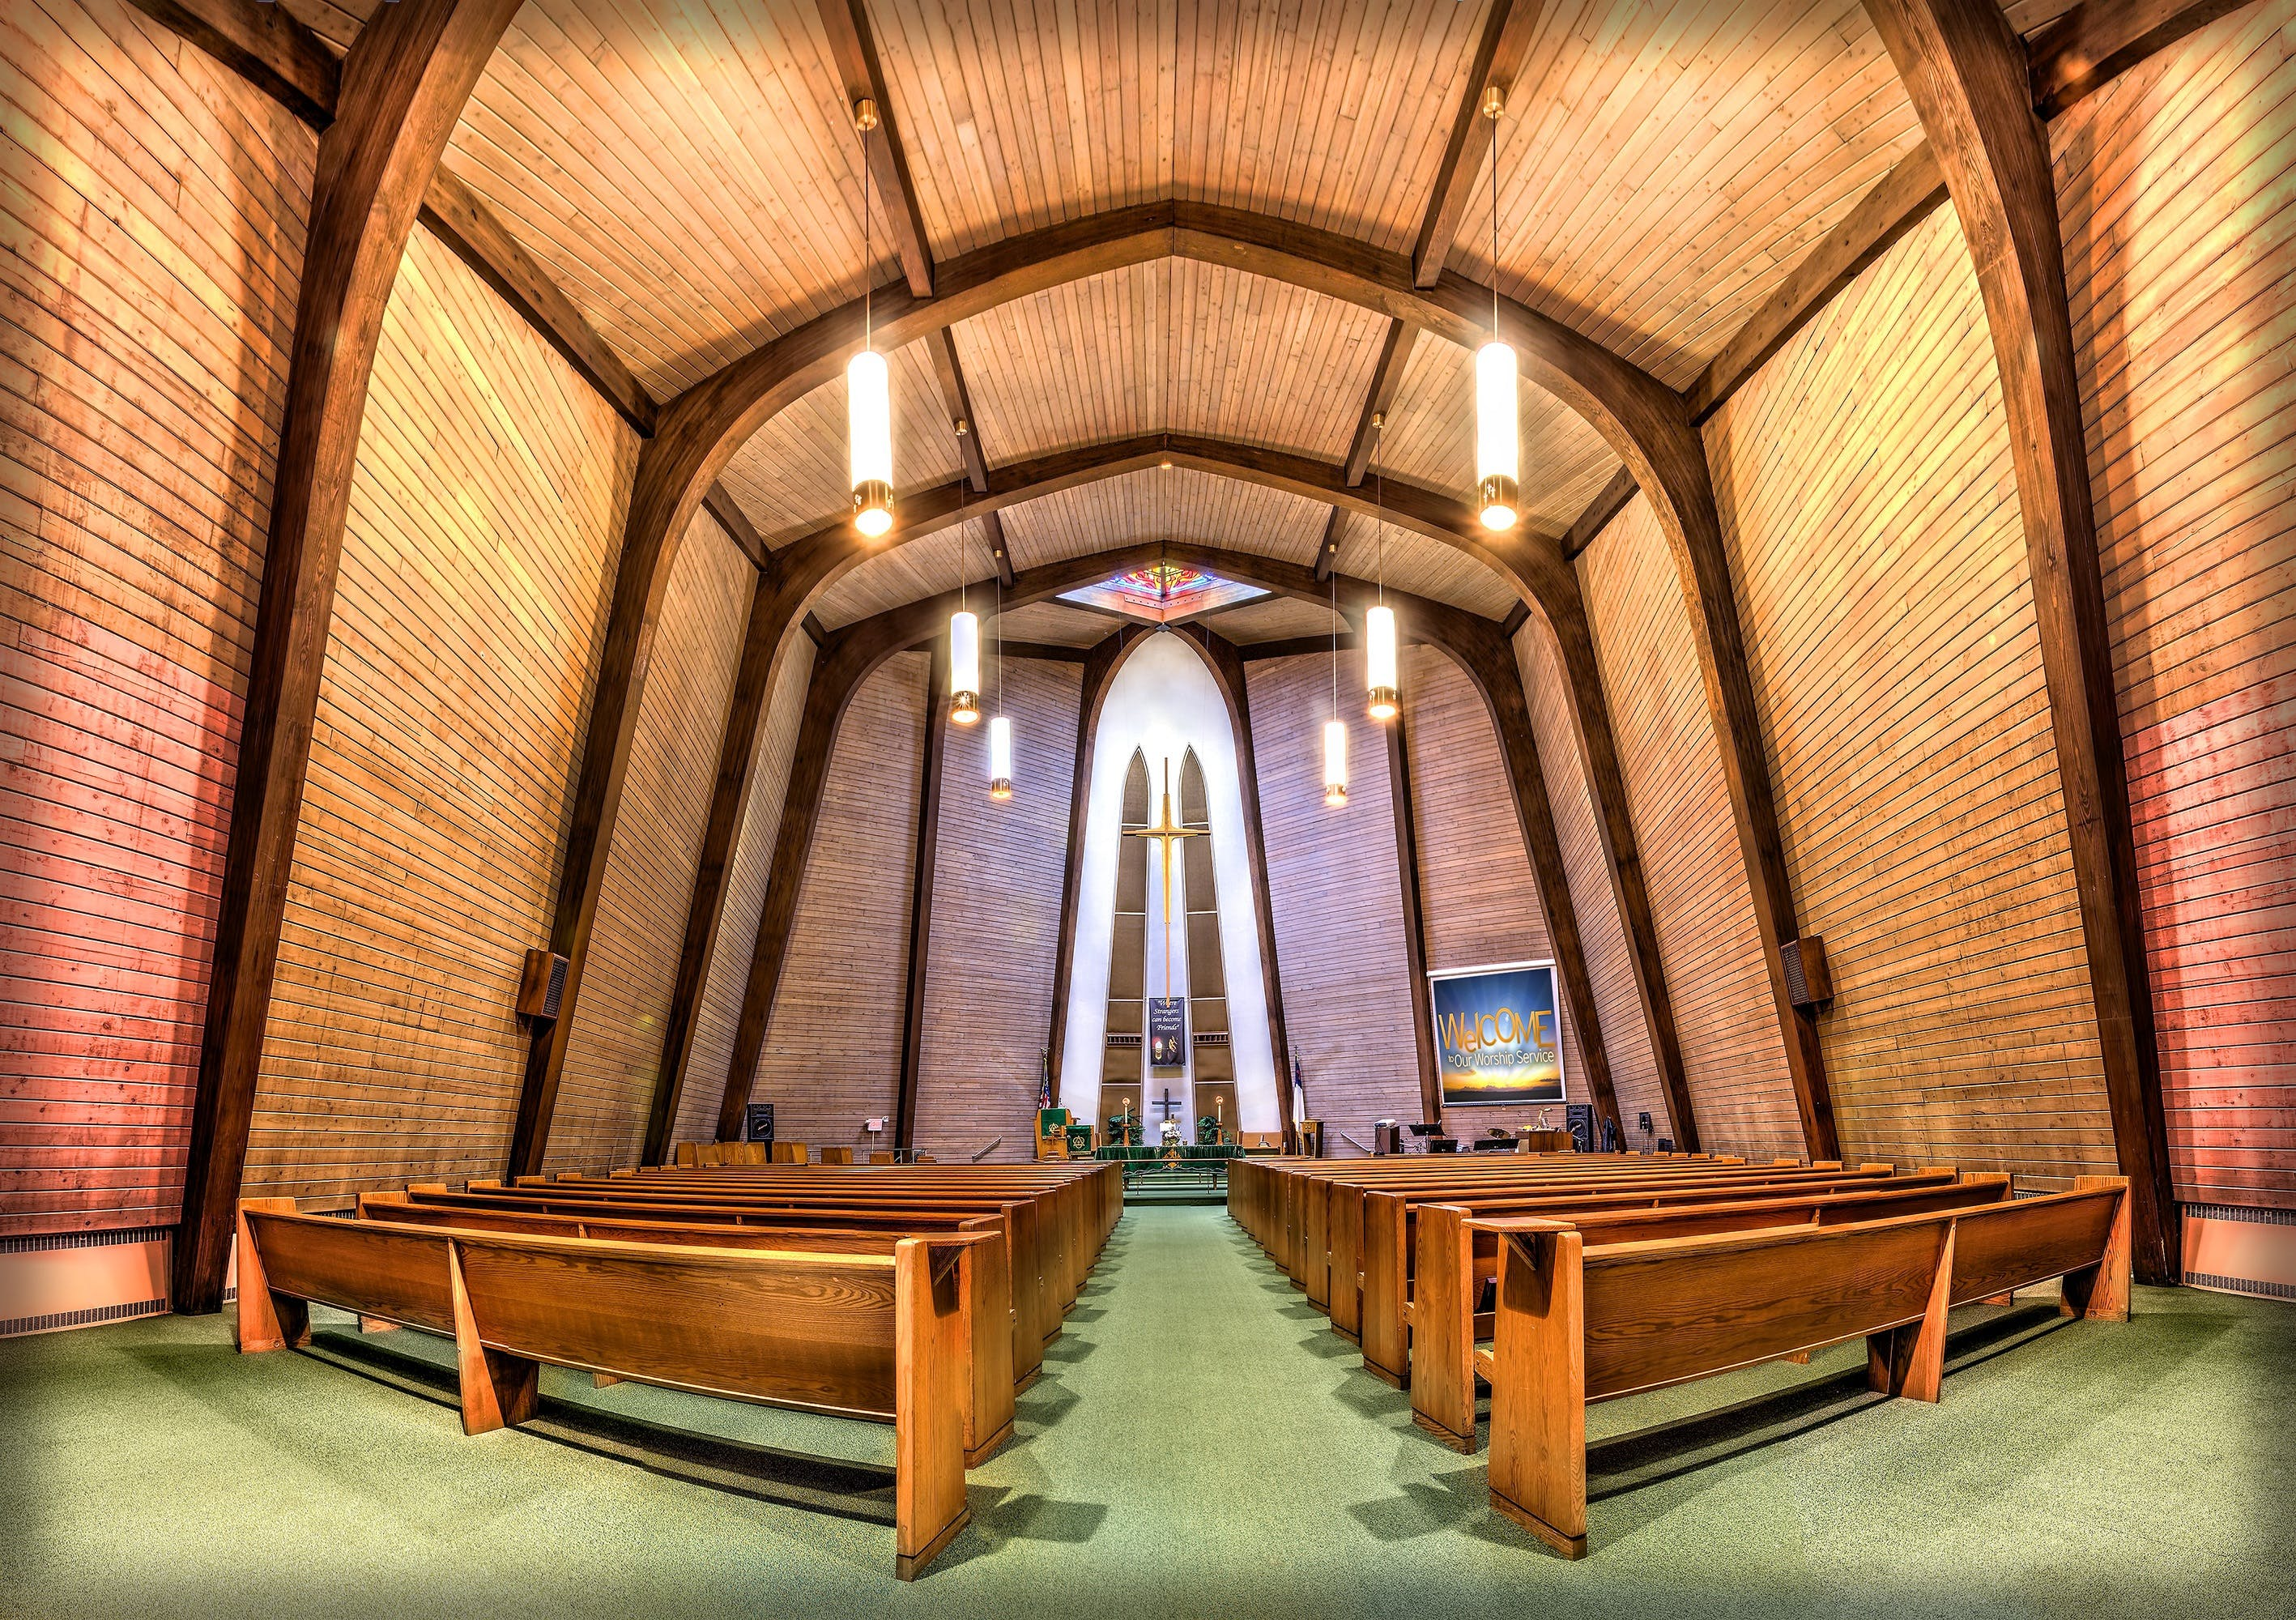 Wood Pews in Church Fisheye Photo